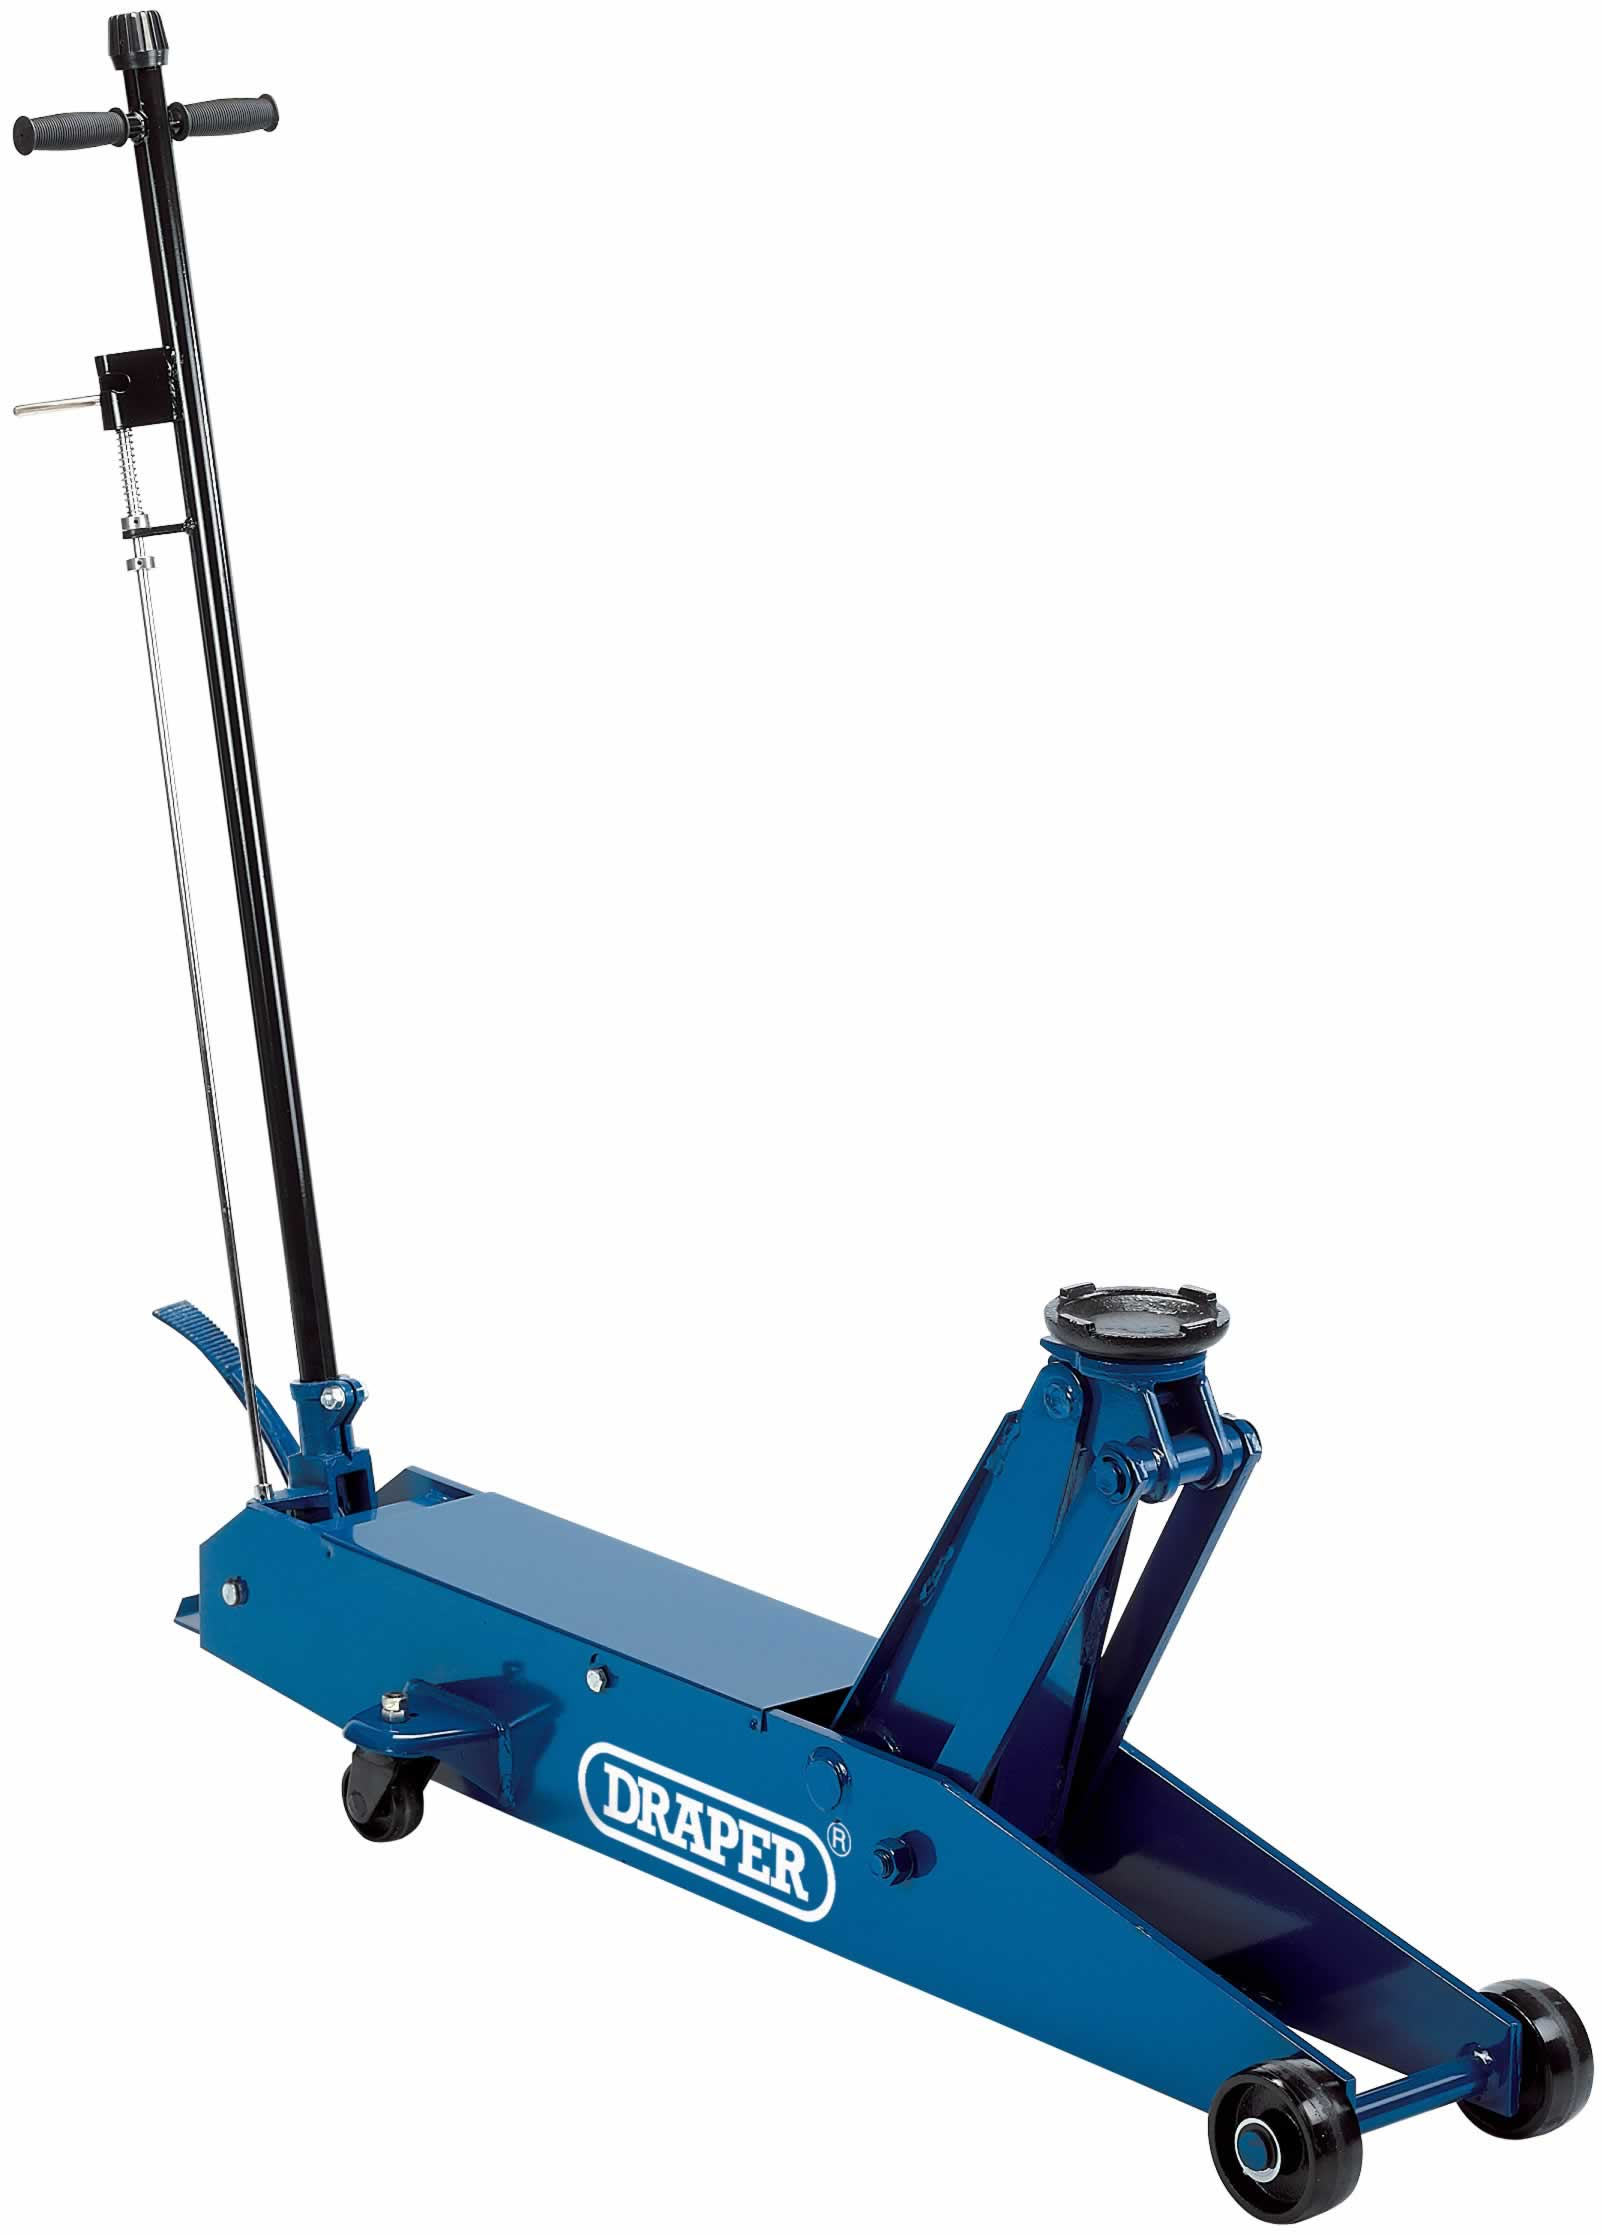 5 TONNE LONG CHASSIS HYDRAULIC TROLLEY JACK WITH 'QUICK LIFT' FACILITY